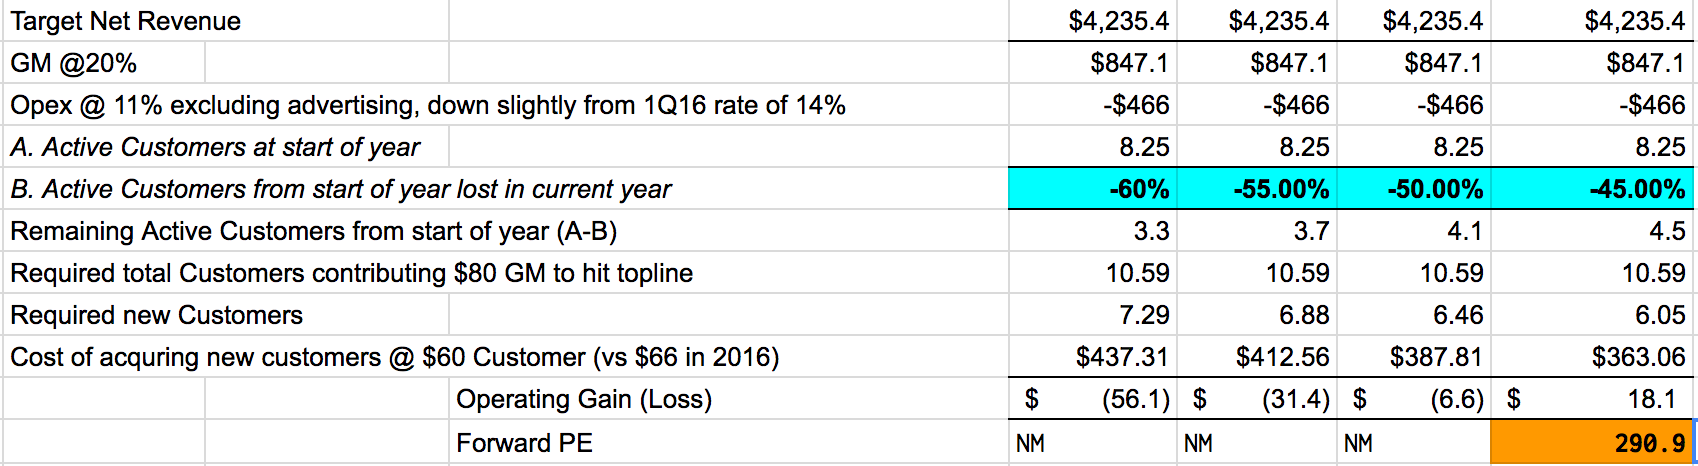 Wayfair 10 off first order - The Drop Off Rate Has To Improve Dramatically To 45 From The 60 Level In 2014 And 2015 For Wayfair To Just About Hit Profitability